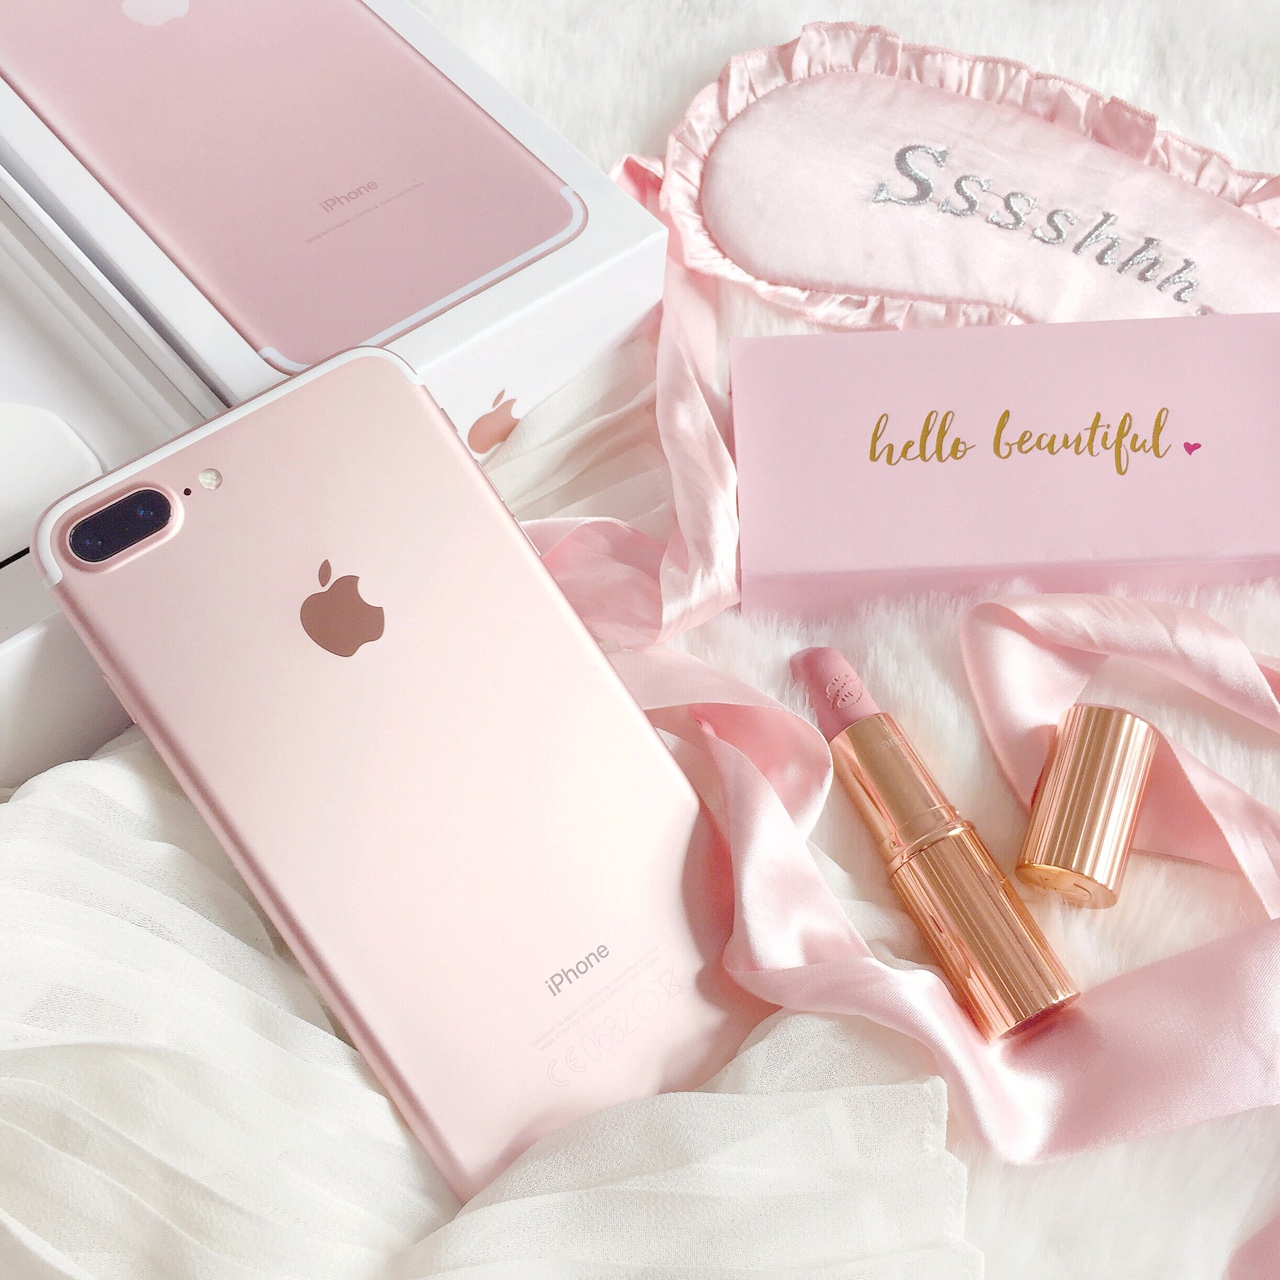 Love, Catherine | iPhone 7 Plus Rose Gold Camera Review